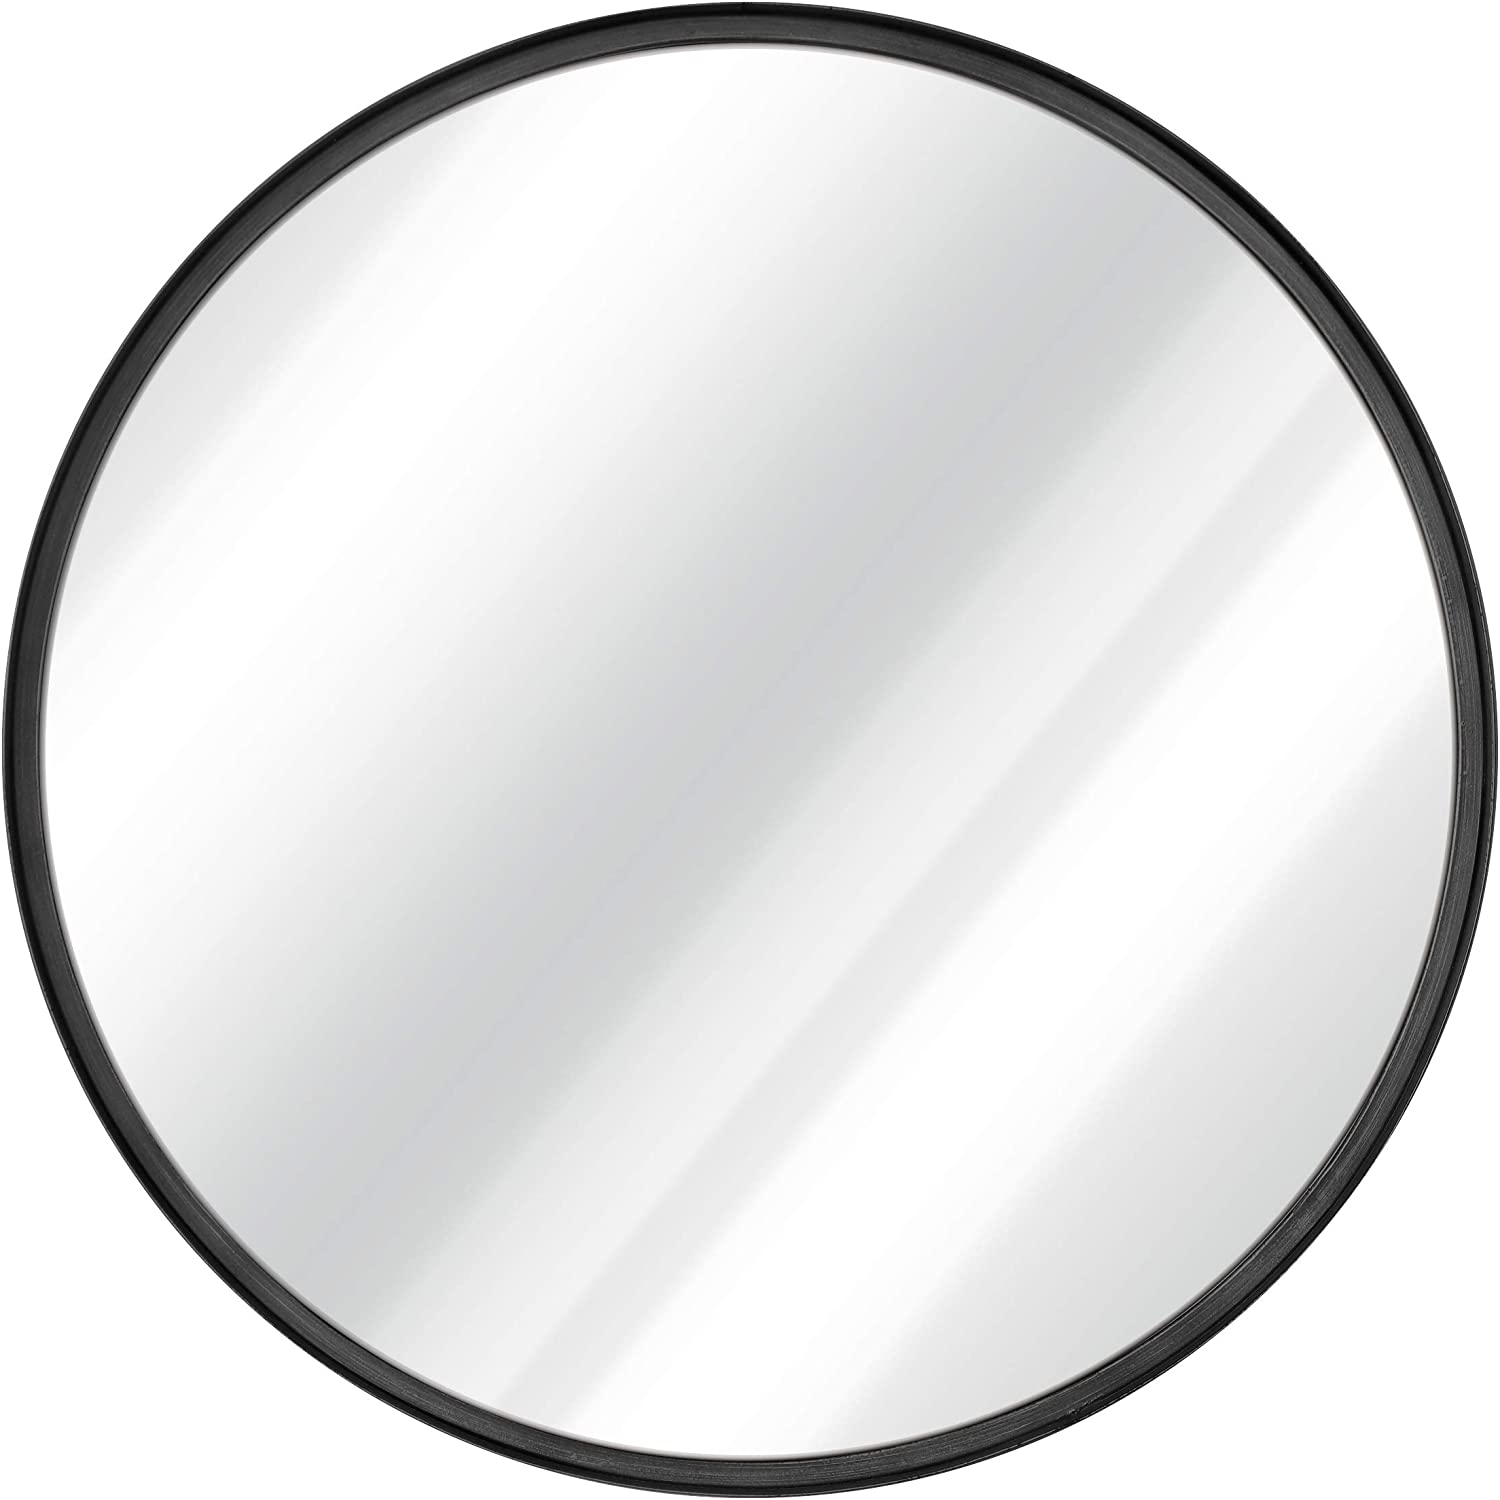 Black Round Wall Mirror - 27.5 Inch Large Round Mirror, Rustic Accent Mirror For Bathroom, Entry, Dining Room, & Living Room. Metal Black Round Mirror For Wall, Vanity Mirror Large Circle Wall Mirror